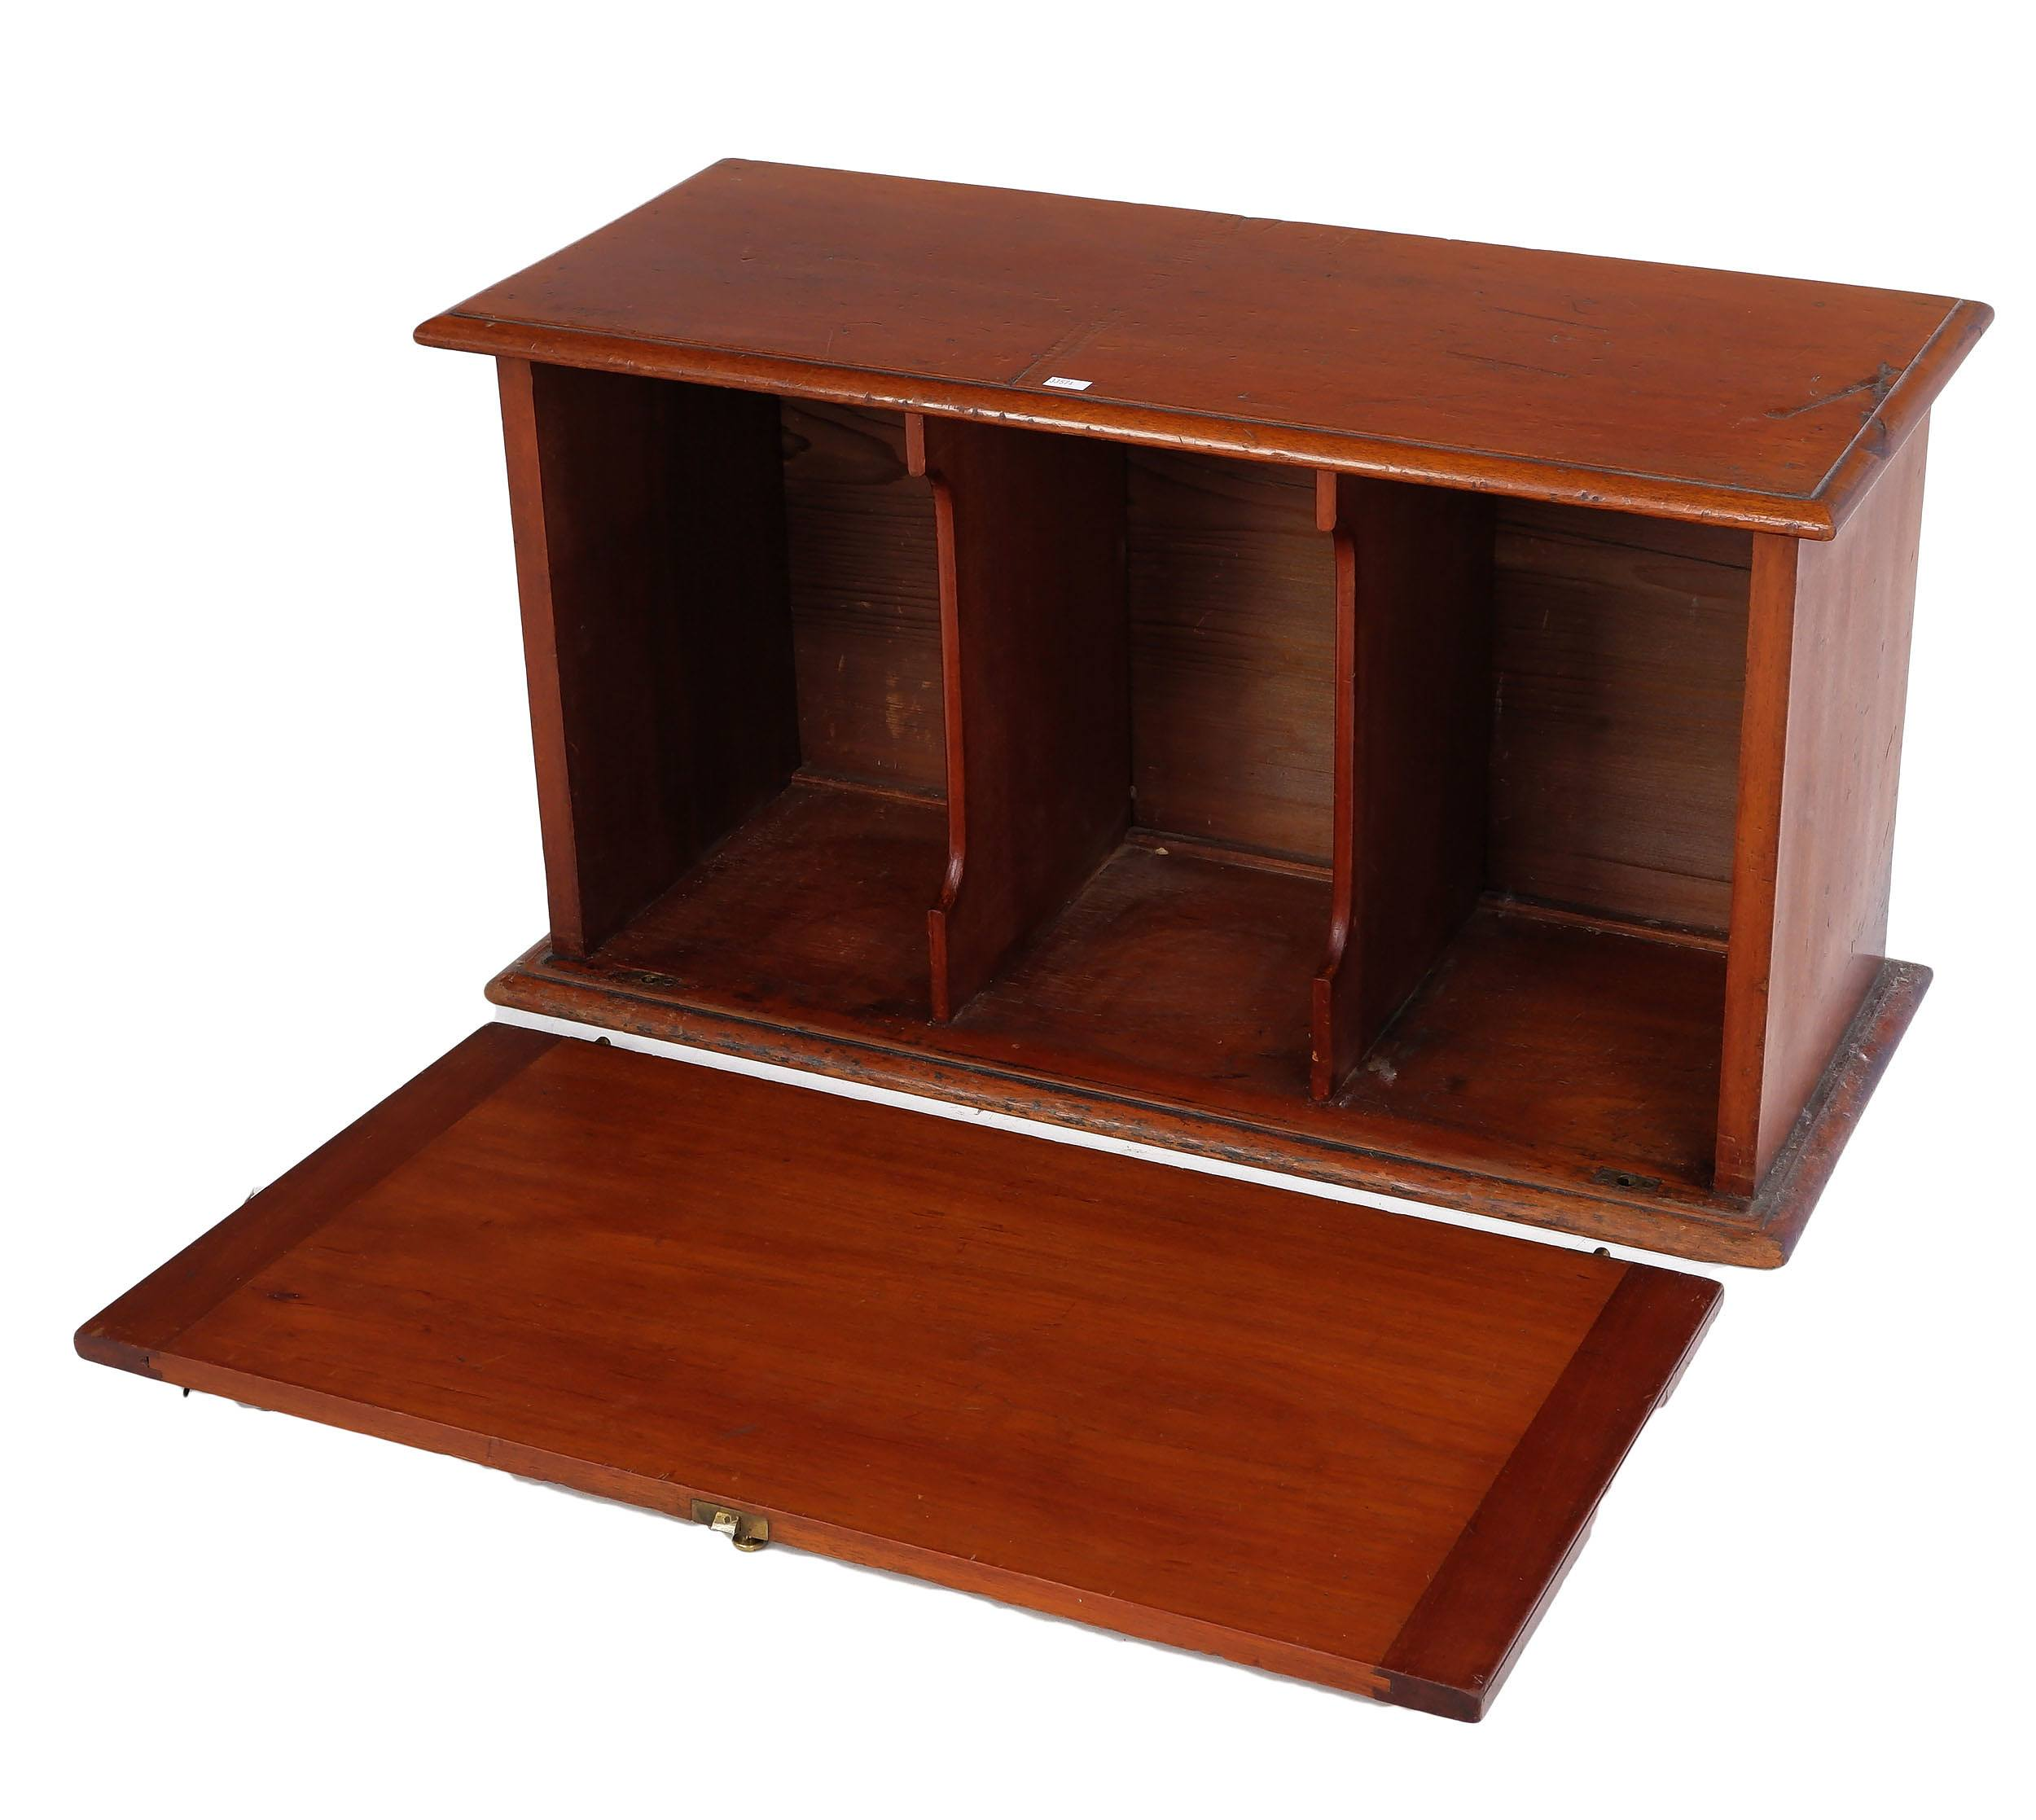 'Antique Australian Cedar Desktop Stationery Cabinet with Drop Front and Divided Interior'